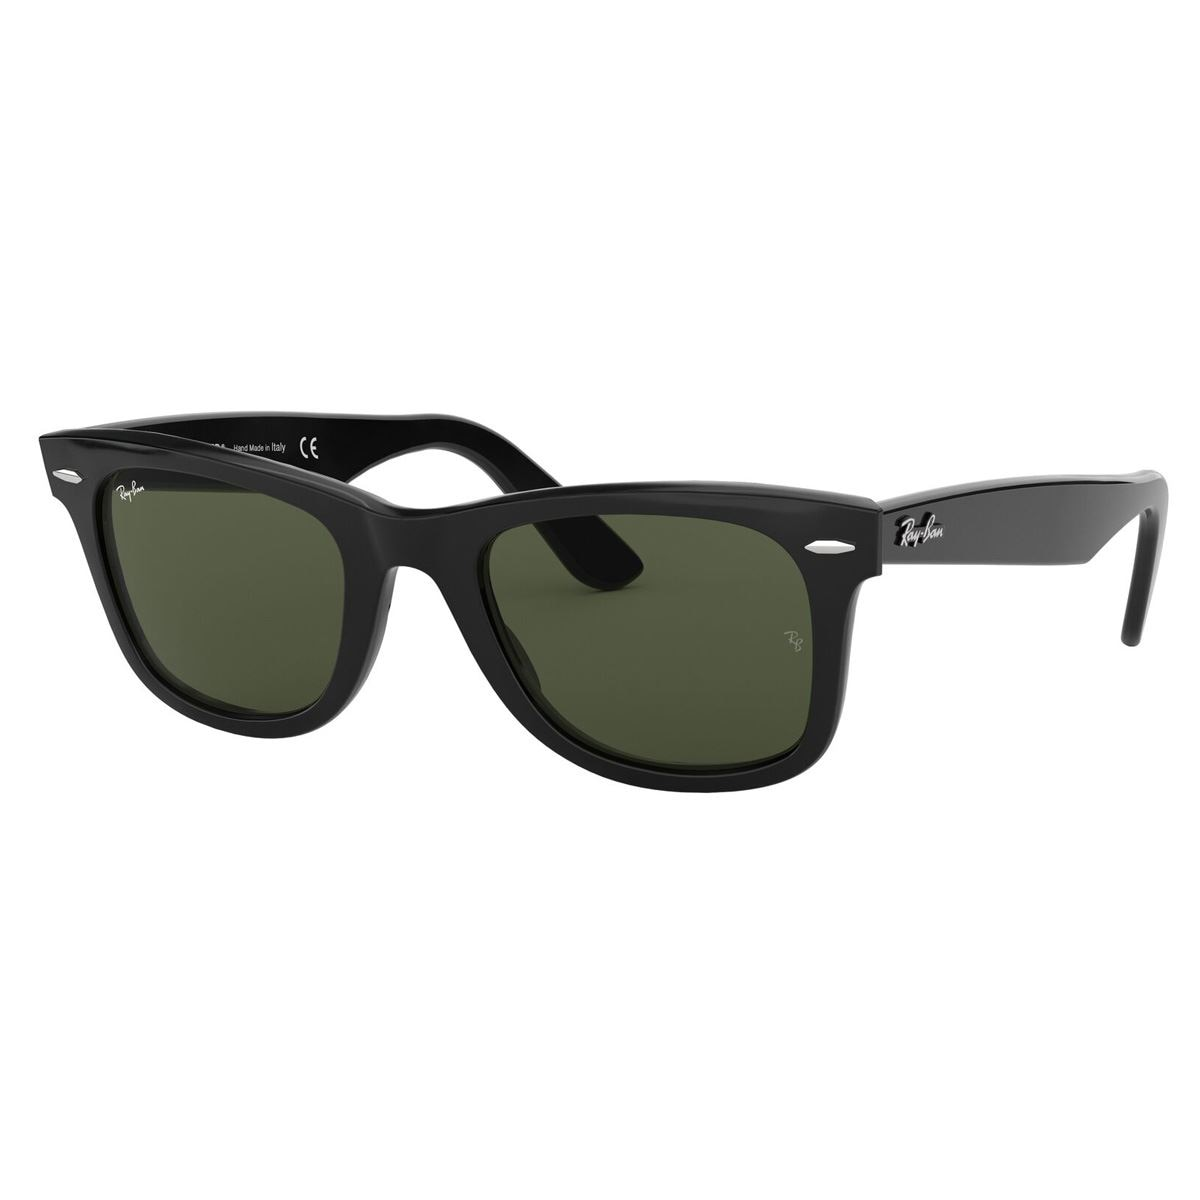 Lente solar ray-ban 0rb2140 901   50 u  - Sanborns